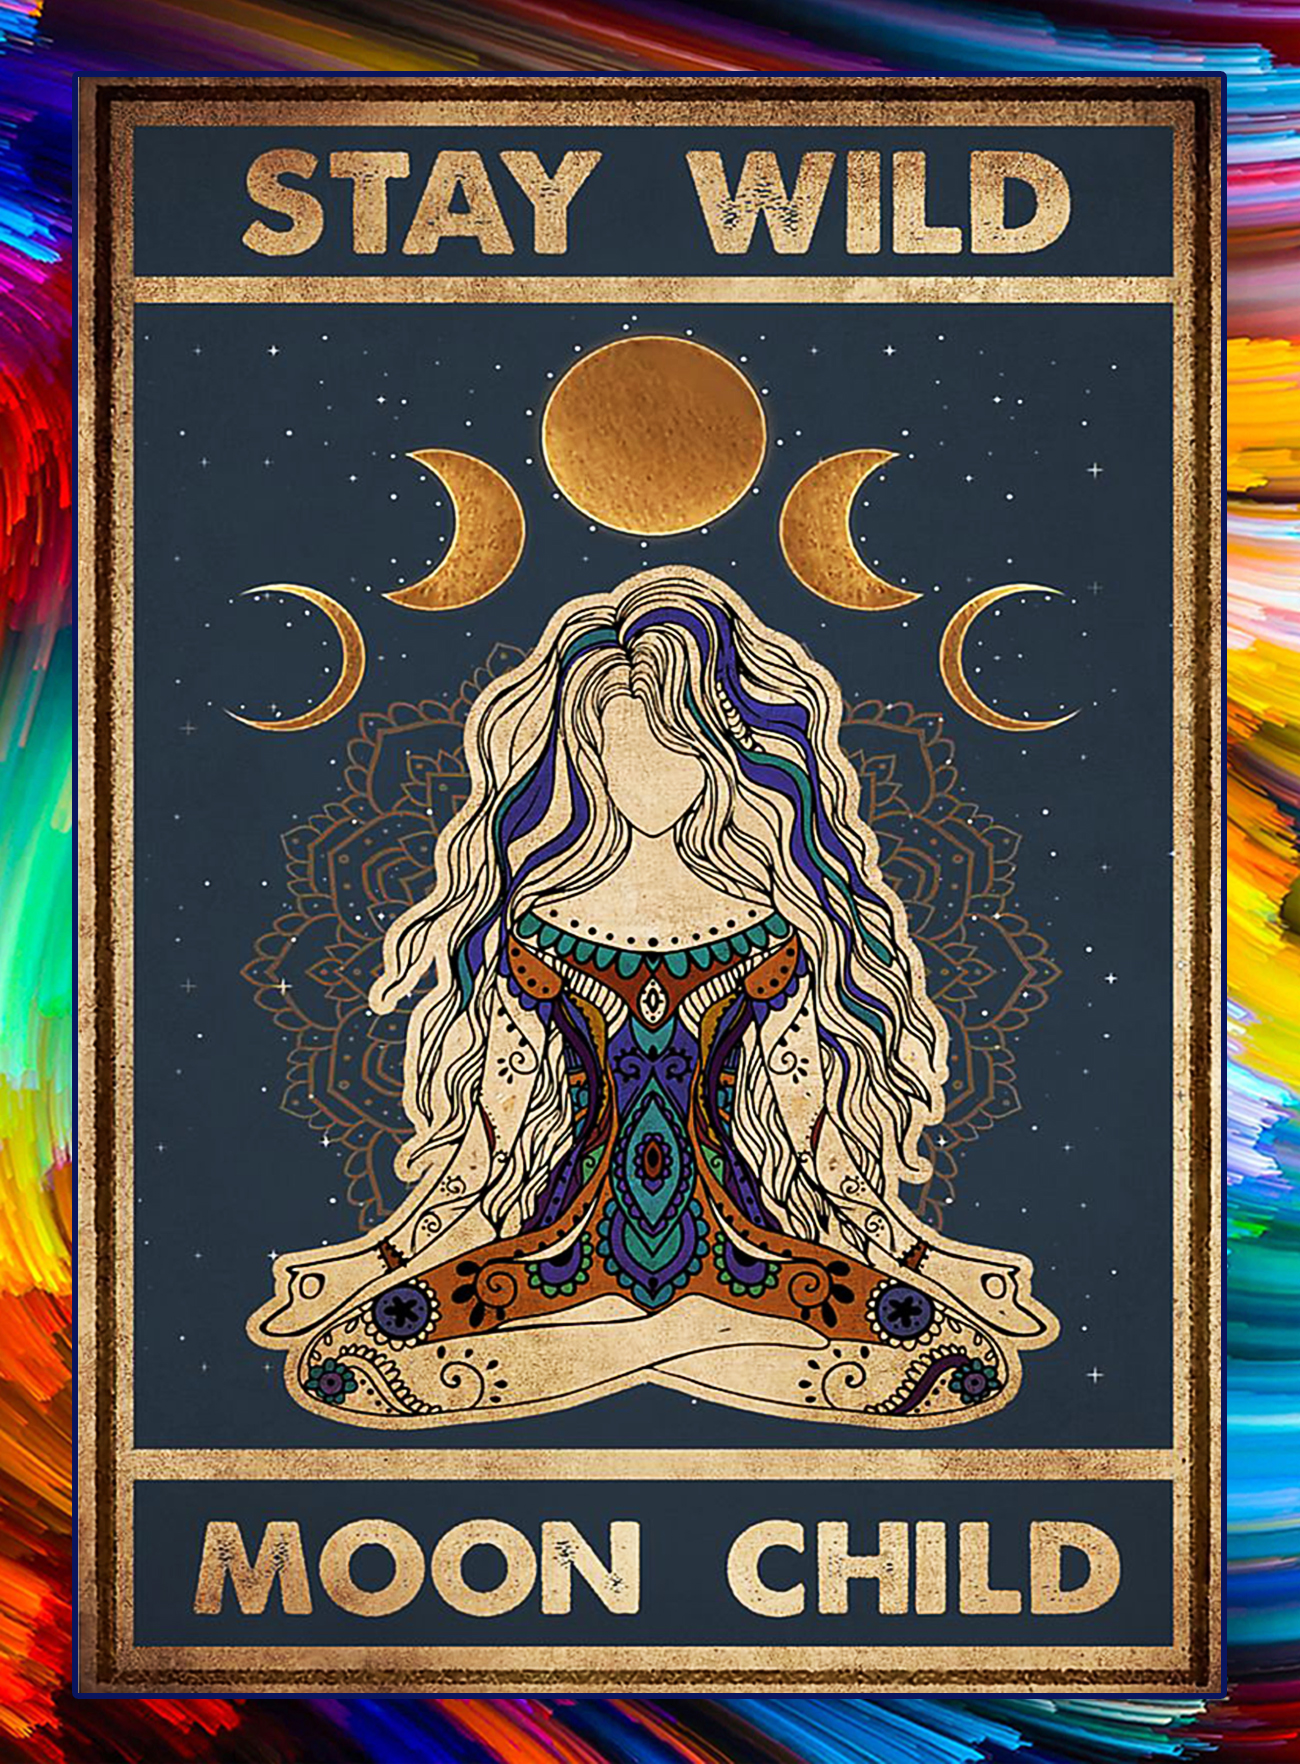 Stay wild moon child yoga girl poster